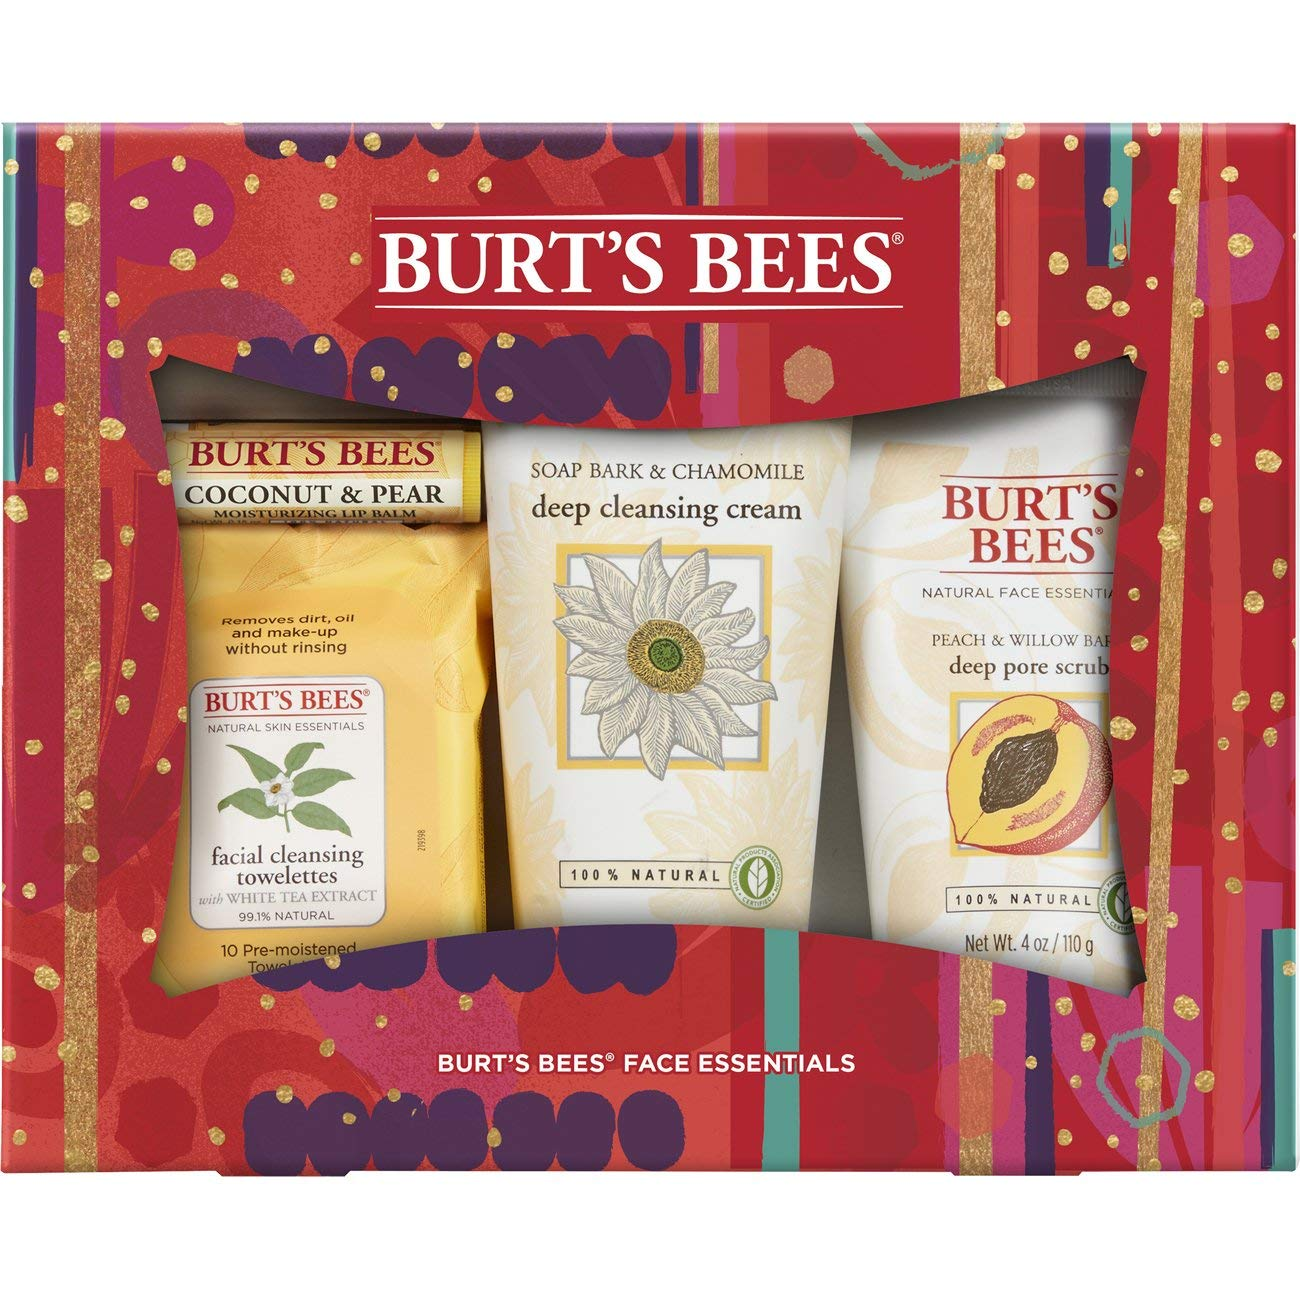 Burt's Bees Face Essentials Holiday Gift Set, 4 Skin Care Products - Cleansing Towelettes, Deep Cleansing Cream, Deep Pore Scrub And Lip Balm by Burt's Bees